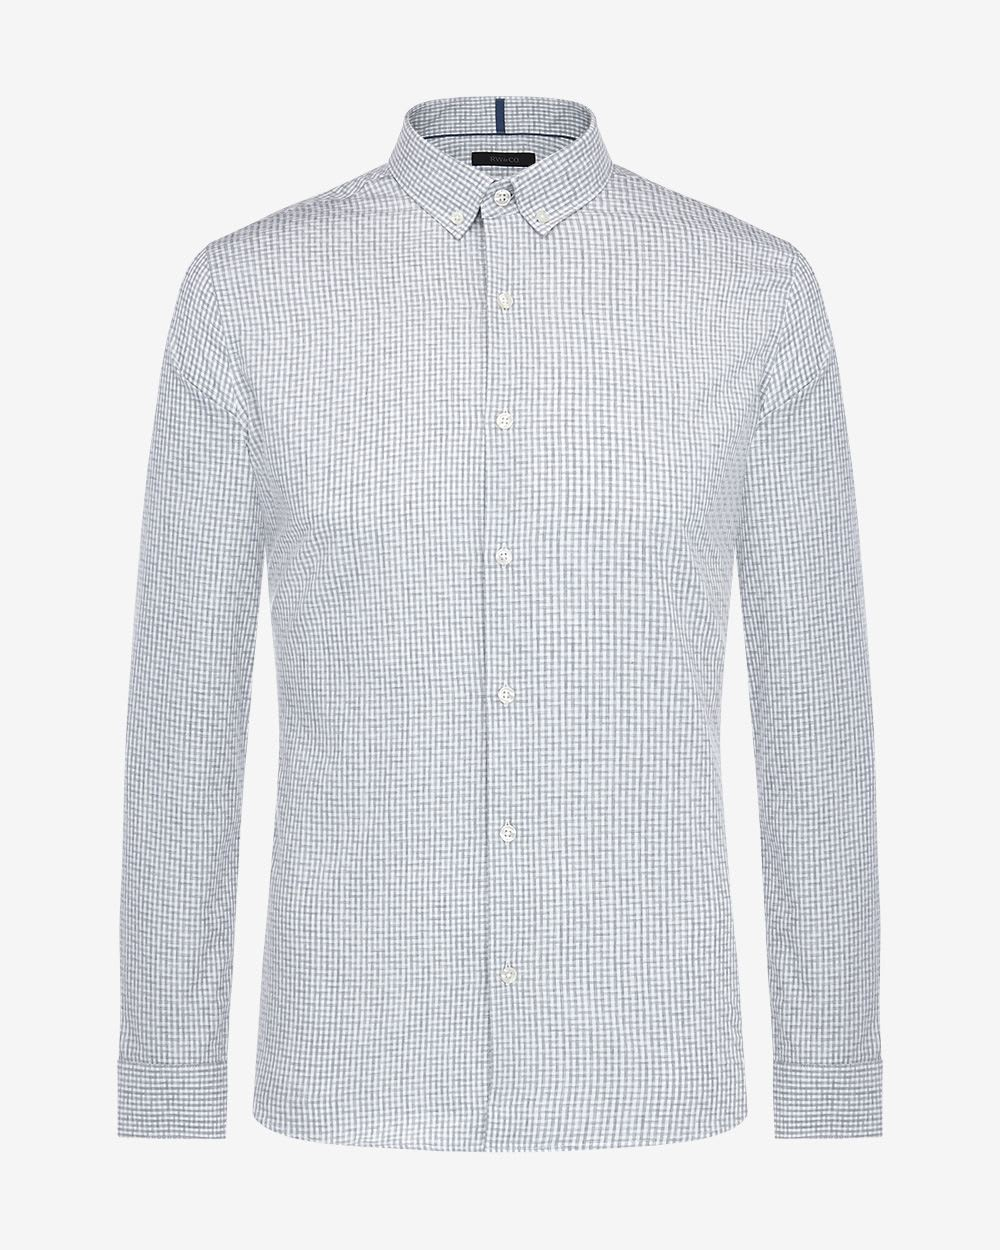 Slim Fit Dress Shirts for Men at Macy's come in a variety of styles and sizes. Shop top brands for Men's Dress Shirts and find the perfect fit today. Macy's Presents: The Edit - A curated mix of fashion and inspiration Check It Out.